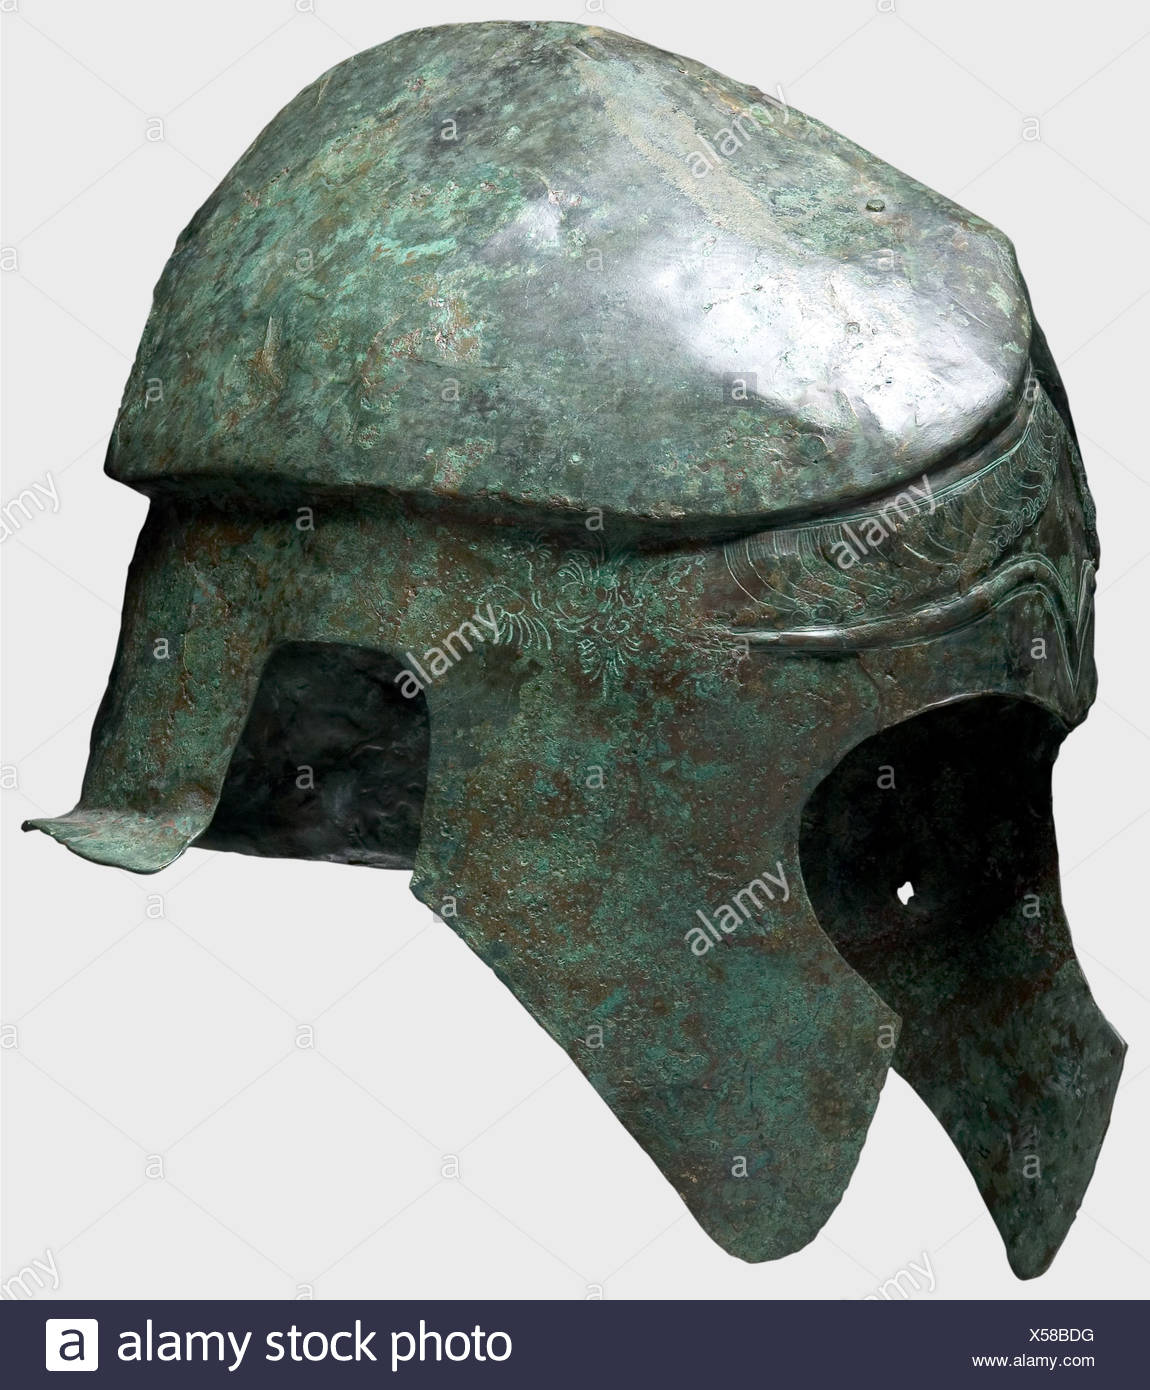 A Chalcidian helmet, 5th/4th century B.C. Bronze. Narrow elongated skull with a carinated and crested crown, holes for the plume attachment, large cheek pieces and ear cutouts, and a short flaring neck guard. The forehead has decorative eyebrows in relief and richly chiselled decorative palmettos, serpents' heads, locks of hair, and floral ornamentation. The right cheek piece has a nail hole, presumably from the votive offering of the helmet in a sanctuary. Height 23 cm. Weight 828 g. The metal is distorted, but well-preserved with dark-green patina. The interi, Additional-Rights-Clearences-NA - Stock Image